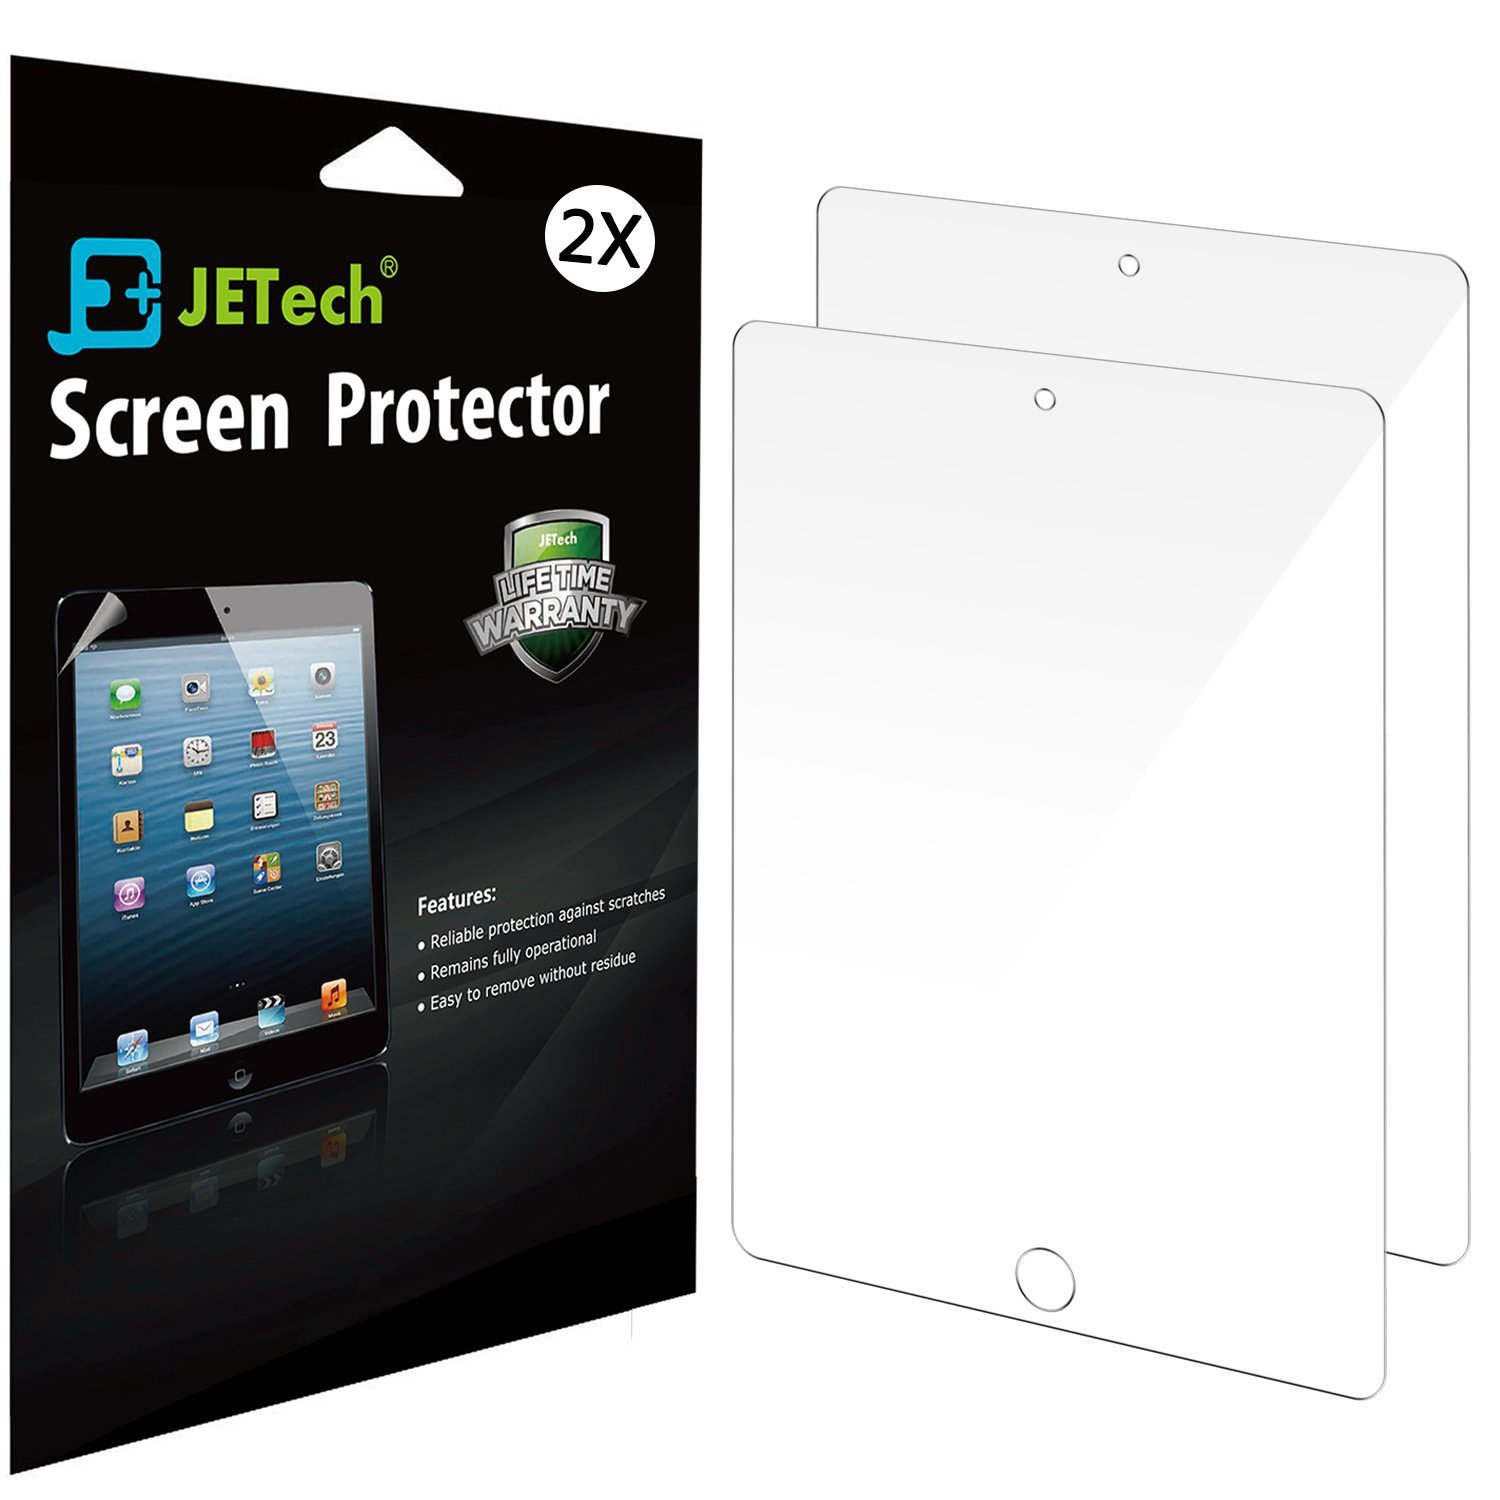 JETech 2-Pack Screen Protector Film for Apple iPad 2/3/4, Bubble Free Installation (HD Clear)